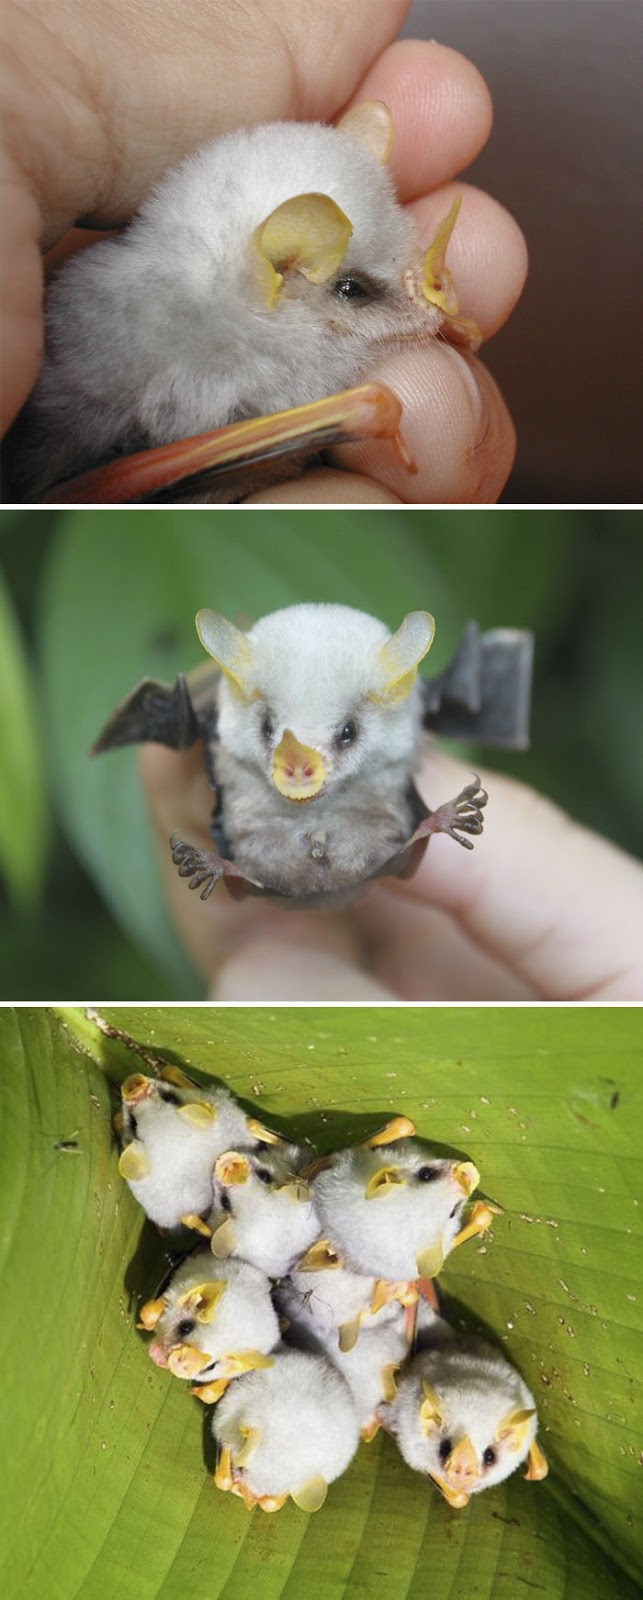 #9 Fluffy Honduran White Bat Baby - 10 Rare Animal Babies You've Probably Never Seen Before